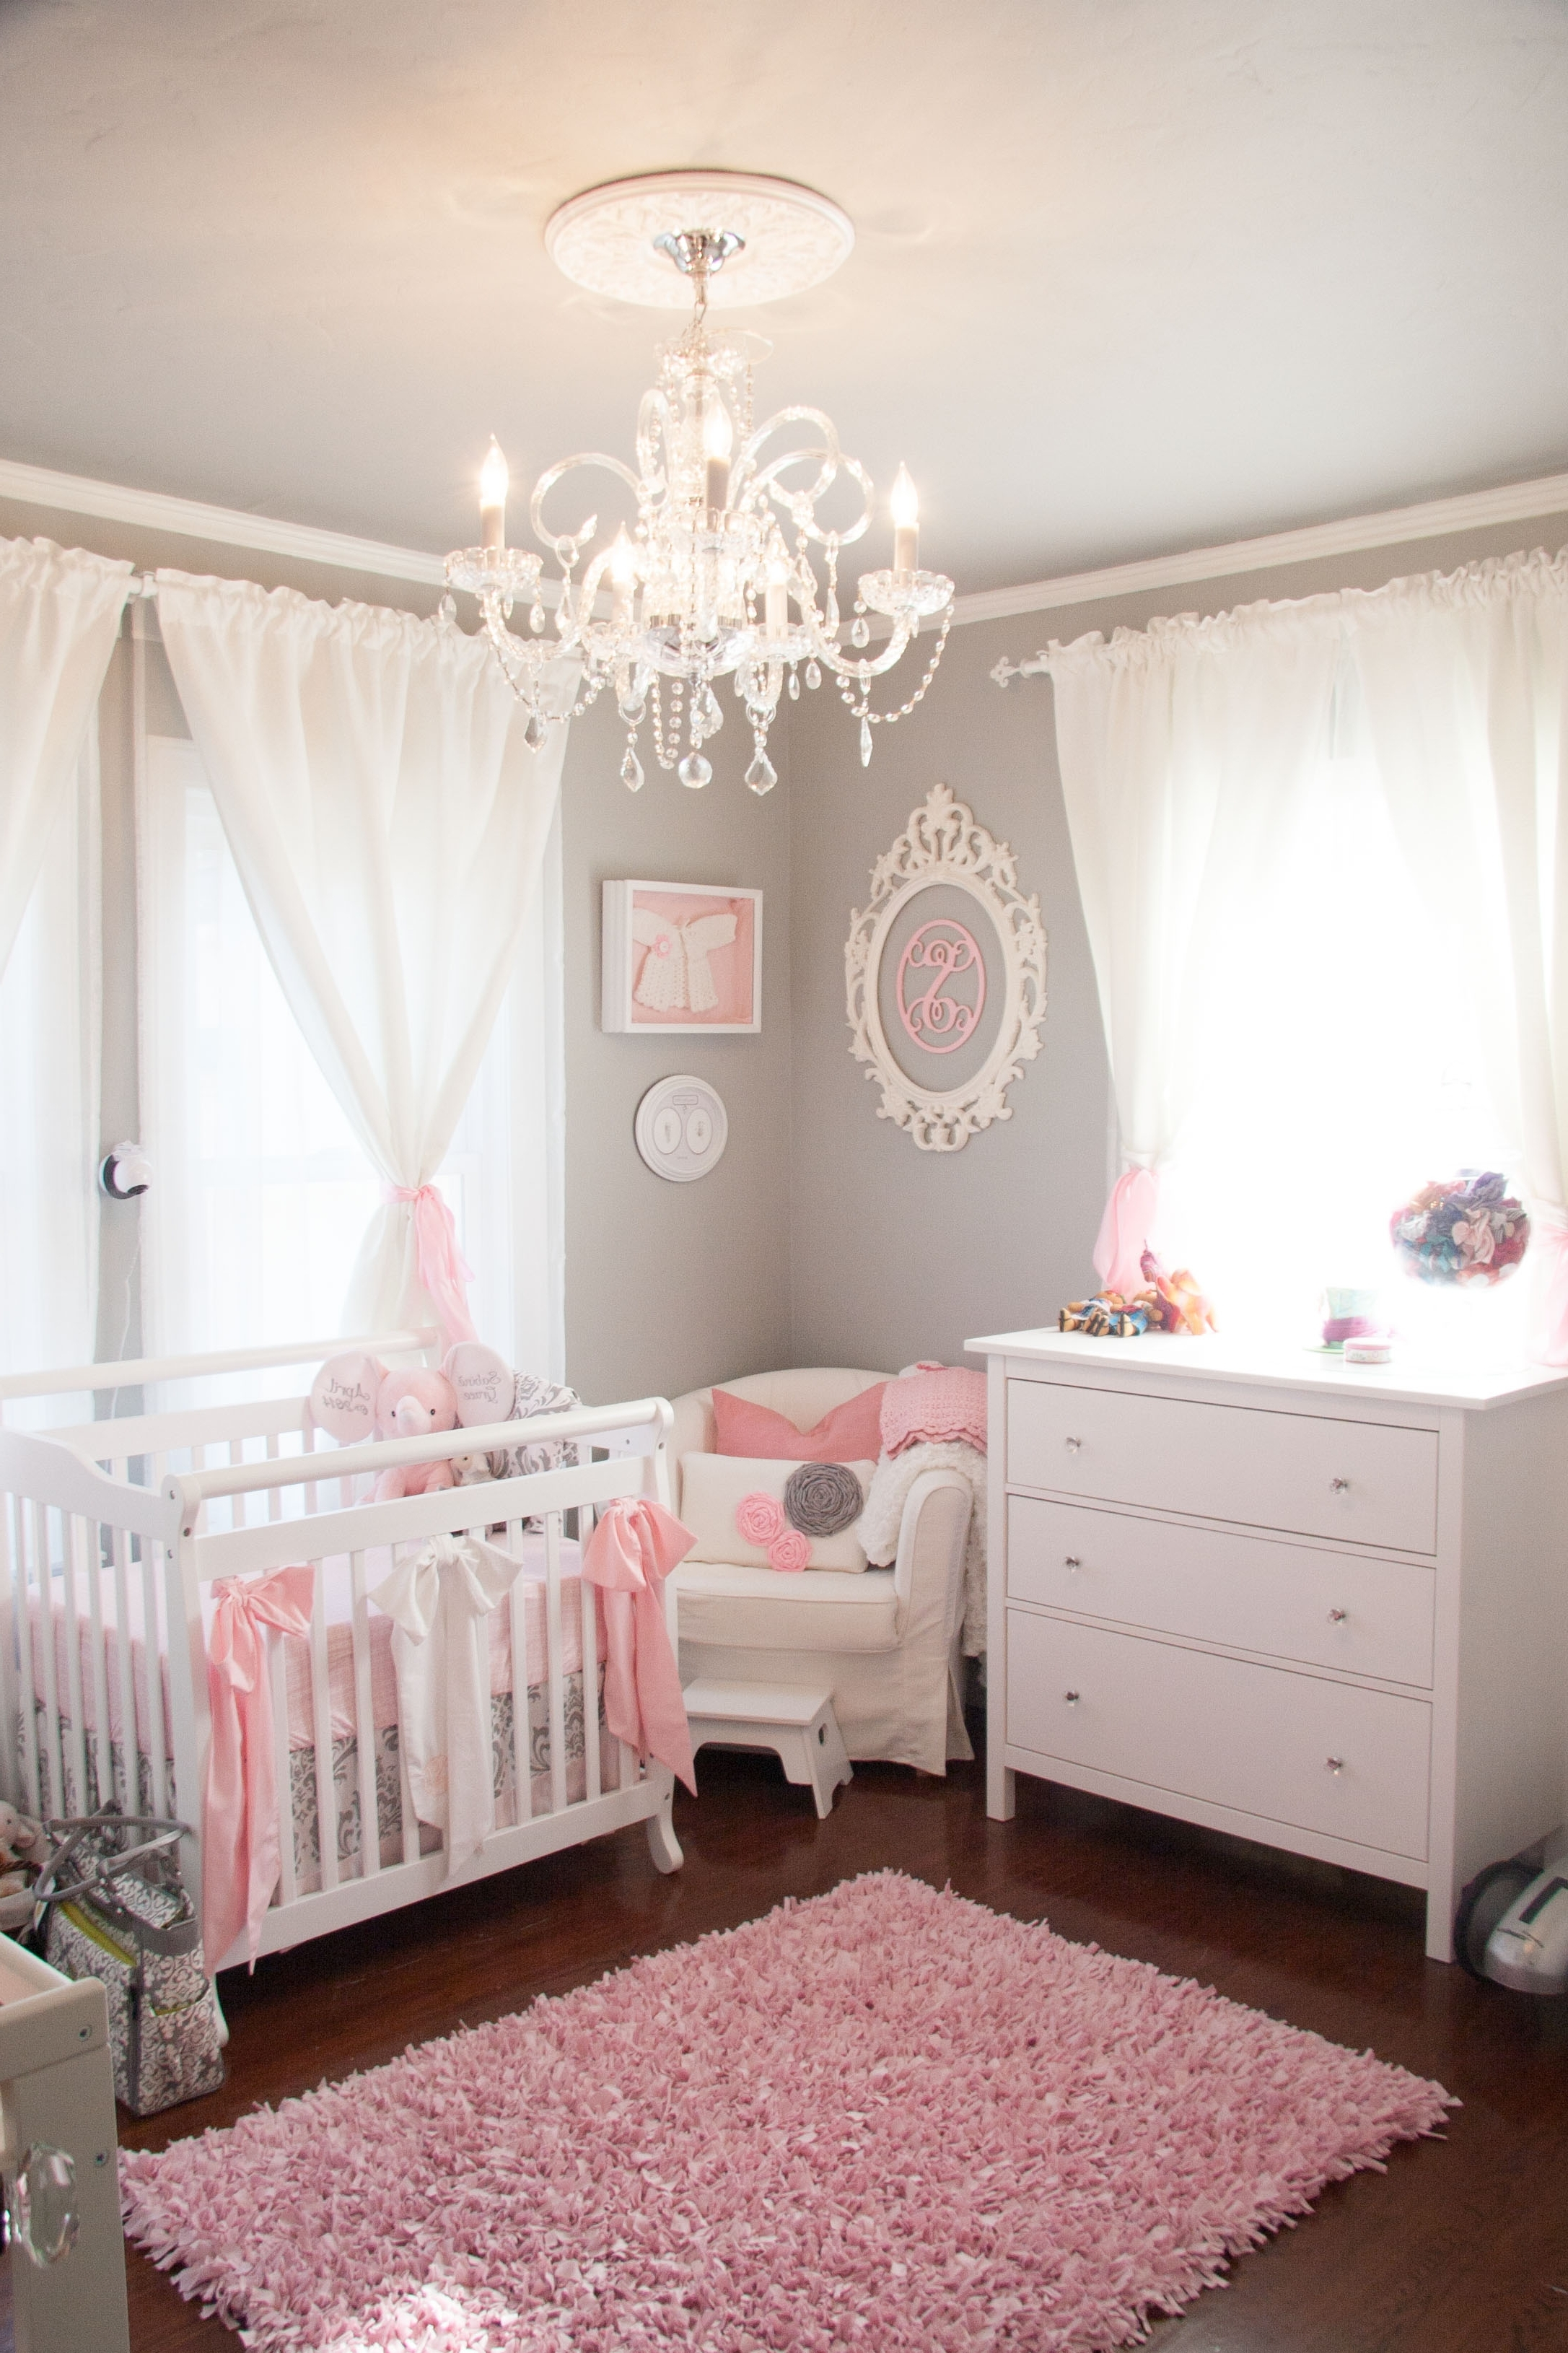 Chandeliers For Baby Girl Room With Regard To Most Current Tiny Budget In A Tiny Room For A Tiny Princess – Project Nursery (View 10 of 20)